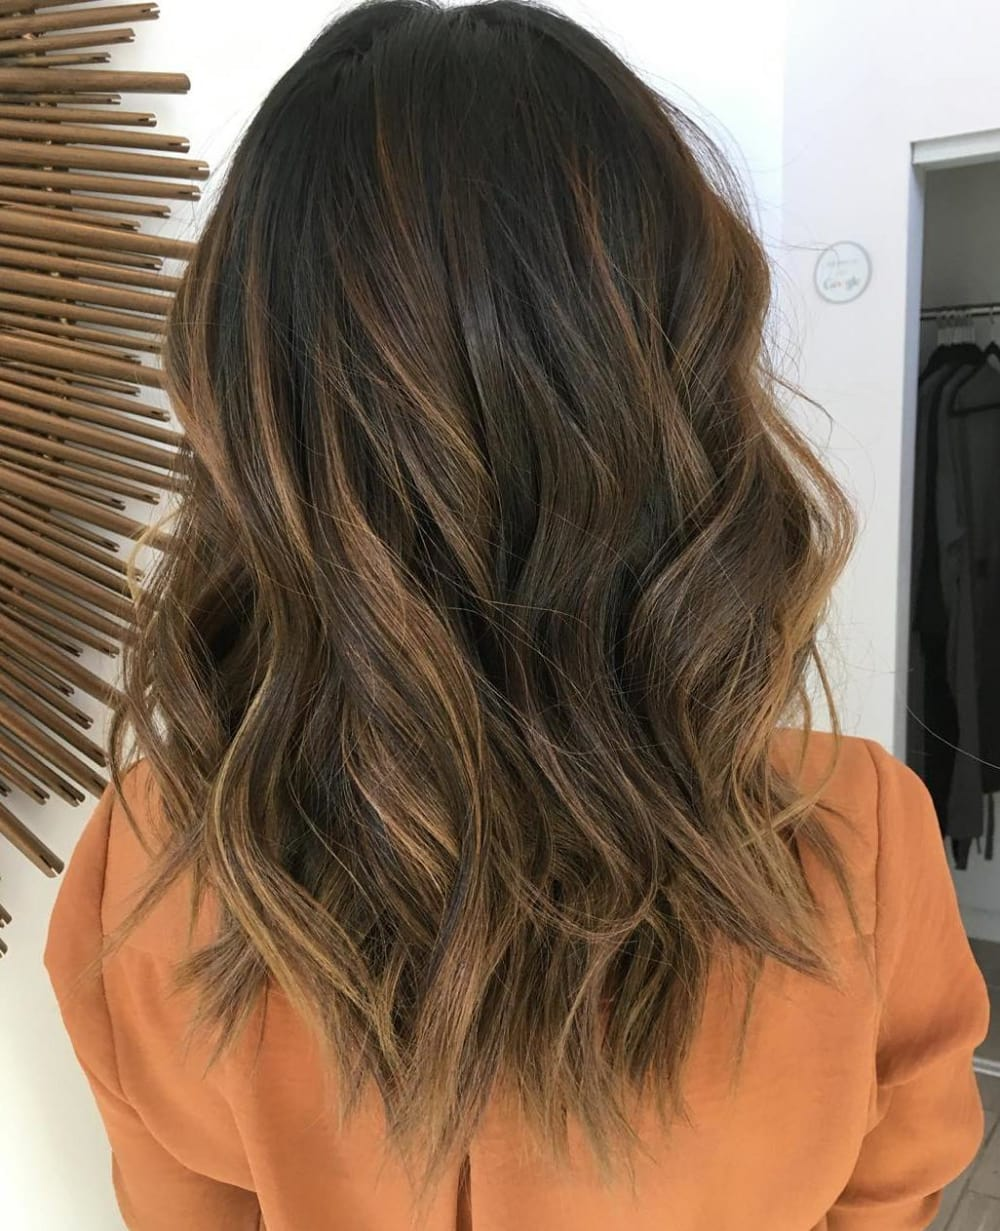 90 Balayage Hair Color Ideas With Blonde, Brown And Caramel Highlights ...